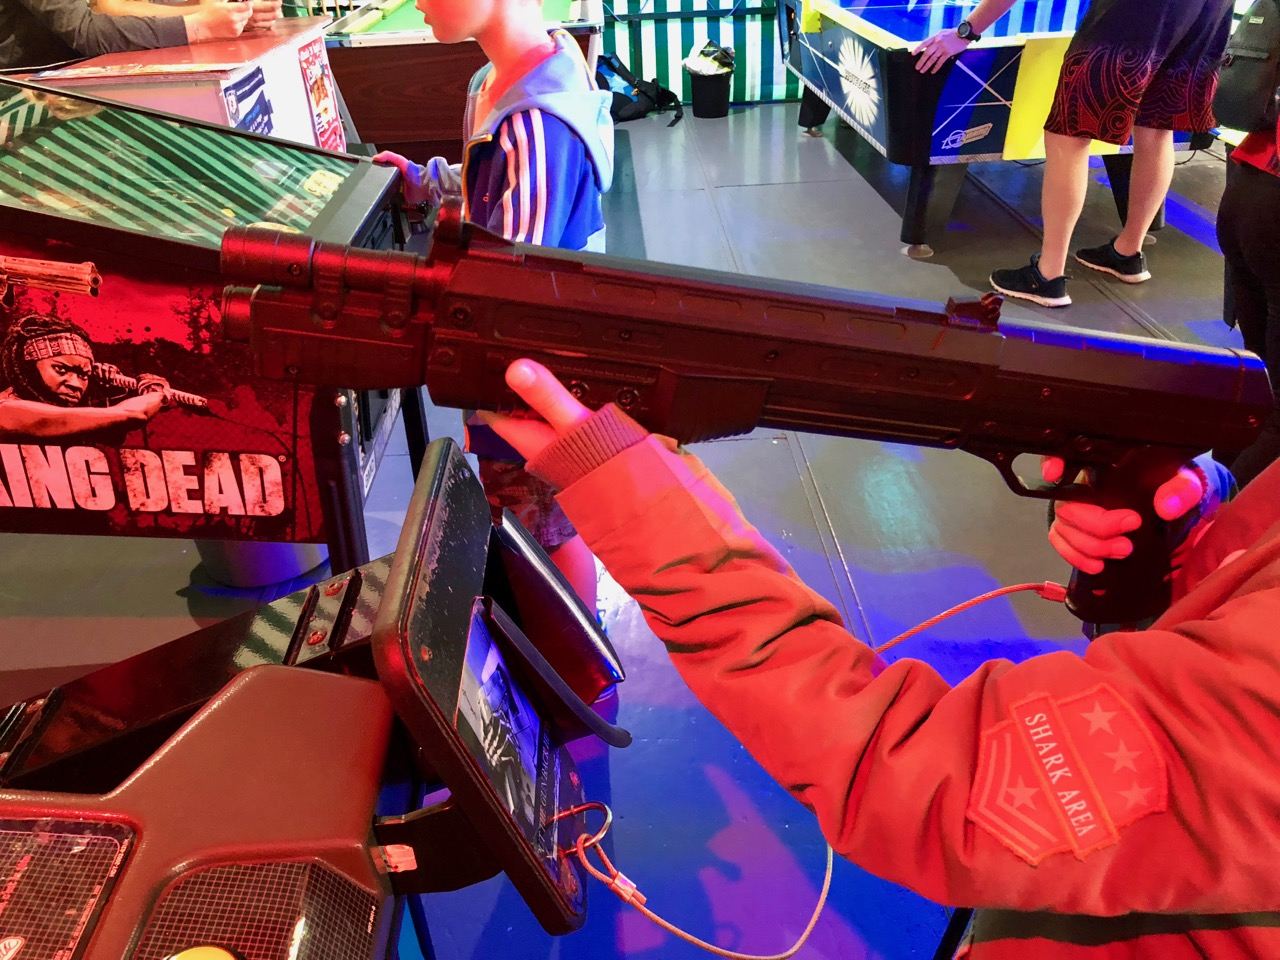 Ein Shotgun-Controller von House of the Dead 3. (Bild: André Eymann)